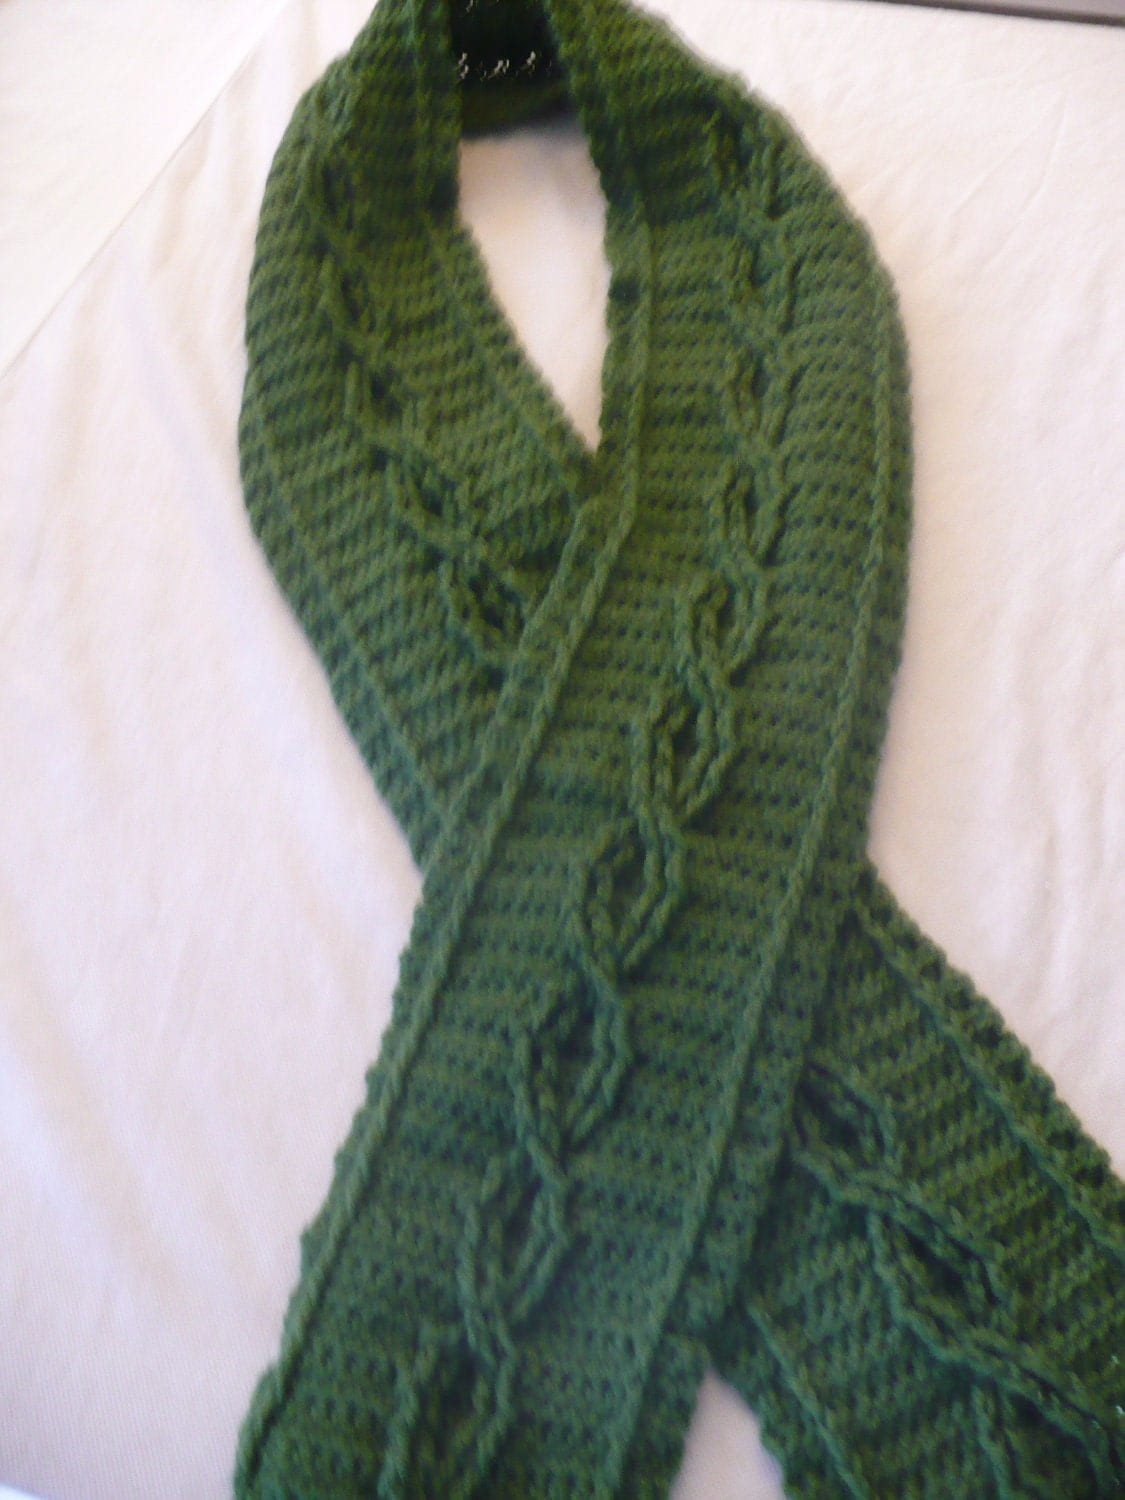 Crochet Scarf Patterns With Cables : Cabled Scarf